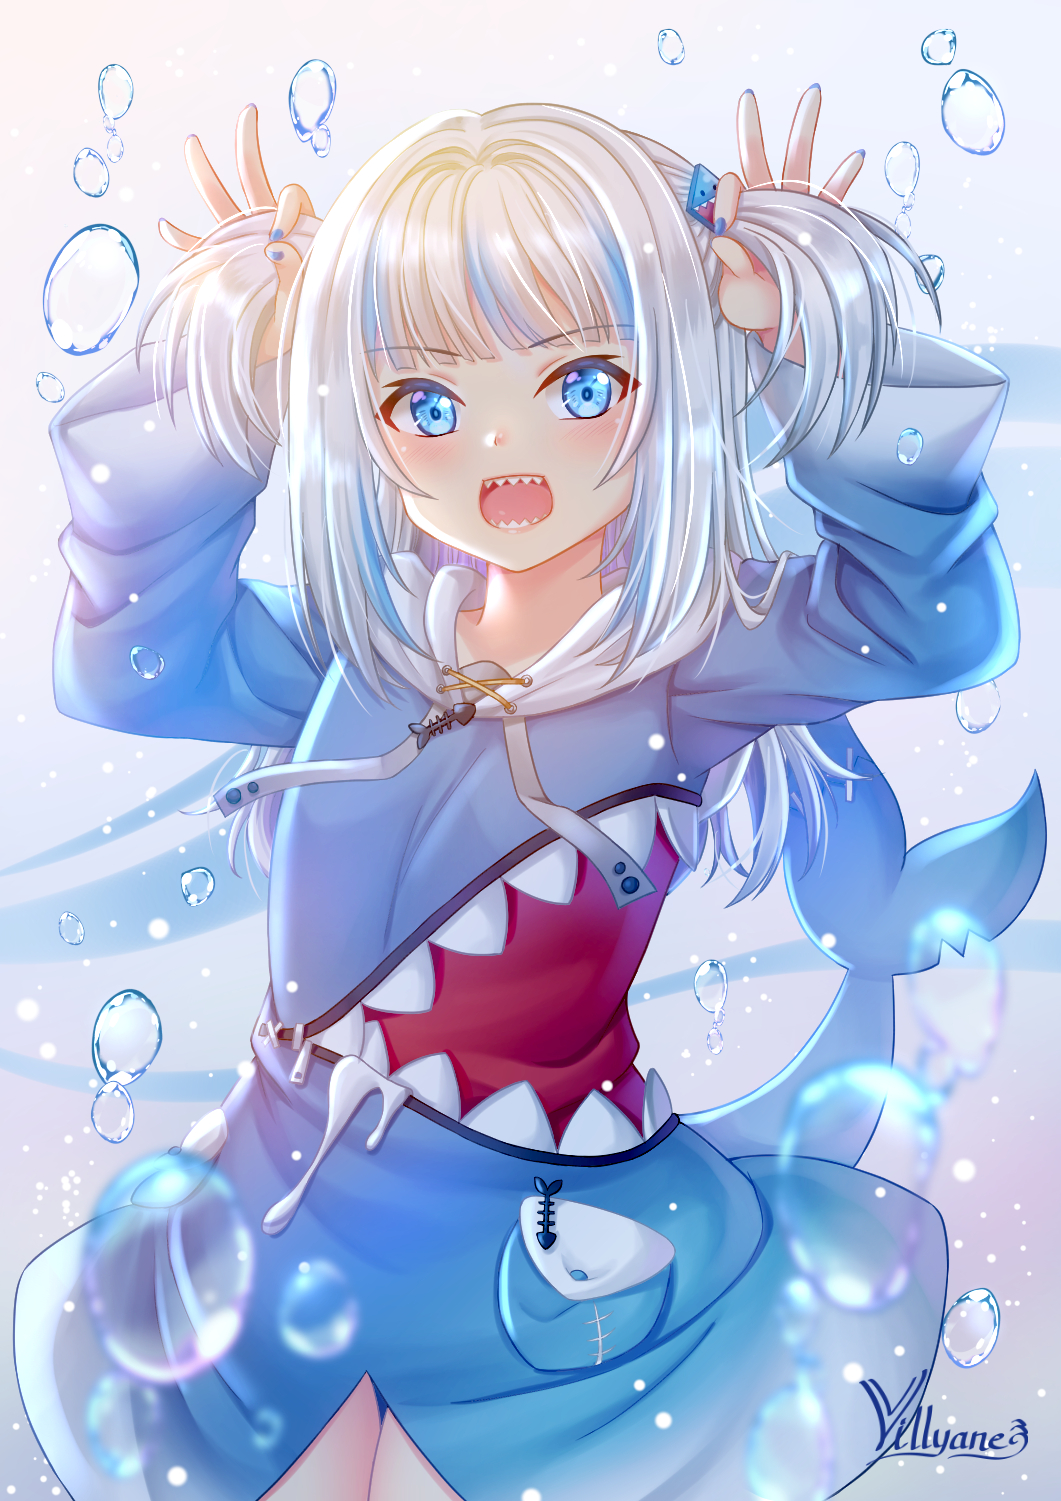 1girl :d artist_name bangs blue_eyes blue_hair blue_hoodie blue_nails blush bunching_hair commentary_request drawstring eyebrows_visible_through_hair gawr_gura hair_ornament highres hololive hololive_english hood hood_down hoodie long_hair long_sleeves looking_at_viewer multicolored_hair nail_polish open_mouth shark_tail sharp_teeth signature silver_hair smile solo streaked_hair tail teeth two_side_up villyane virtual_youtuber water_drop wide_sleeves